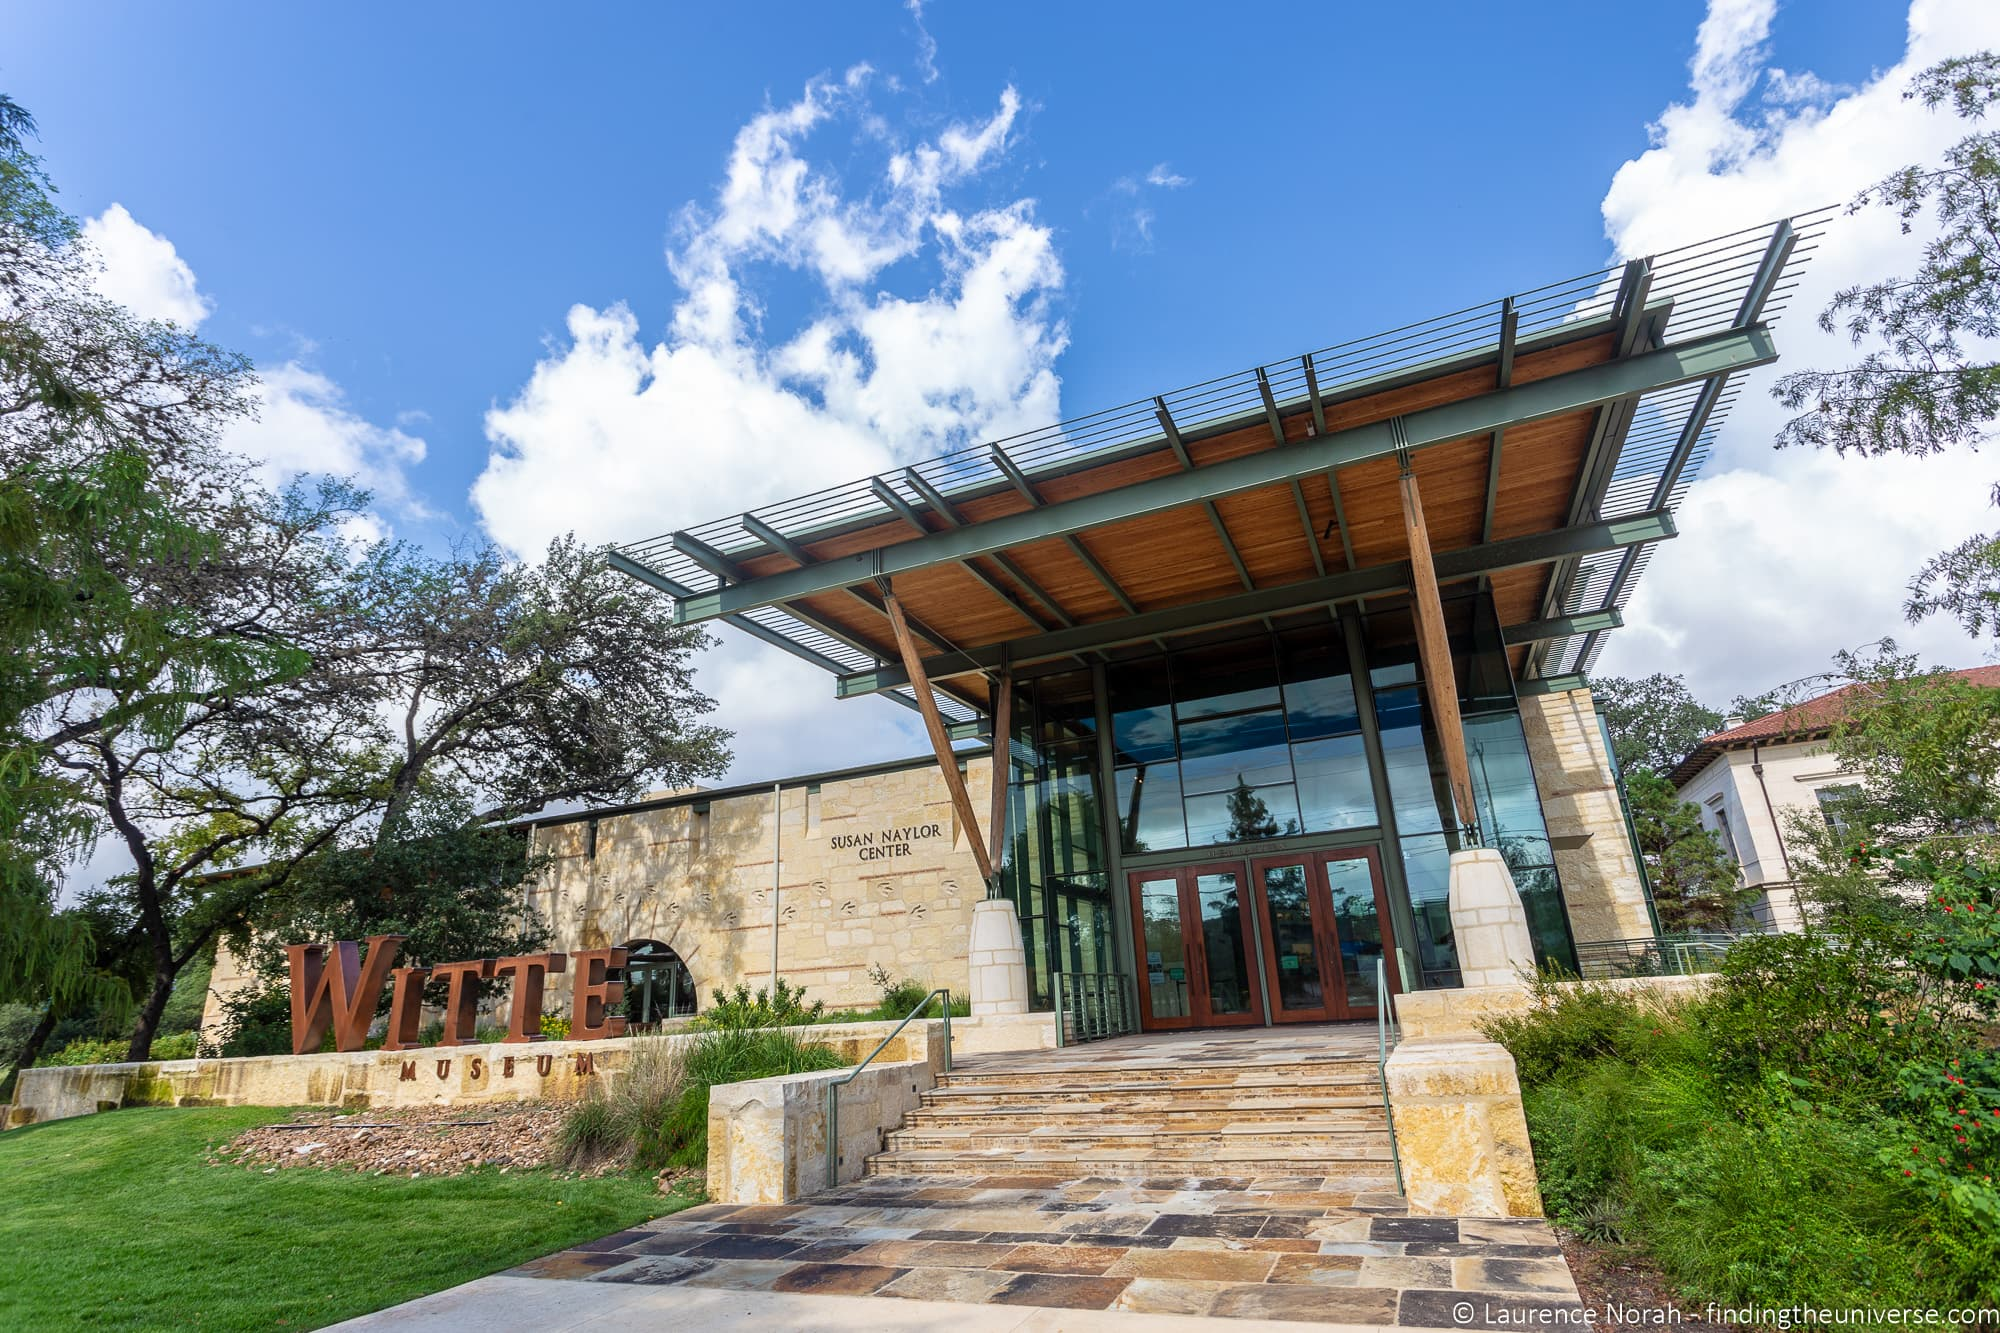 Things to do in San Antonio - Witte Museum